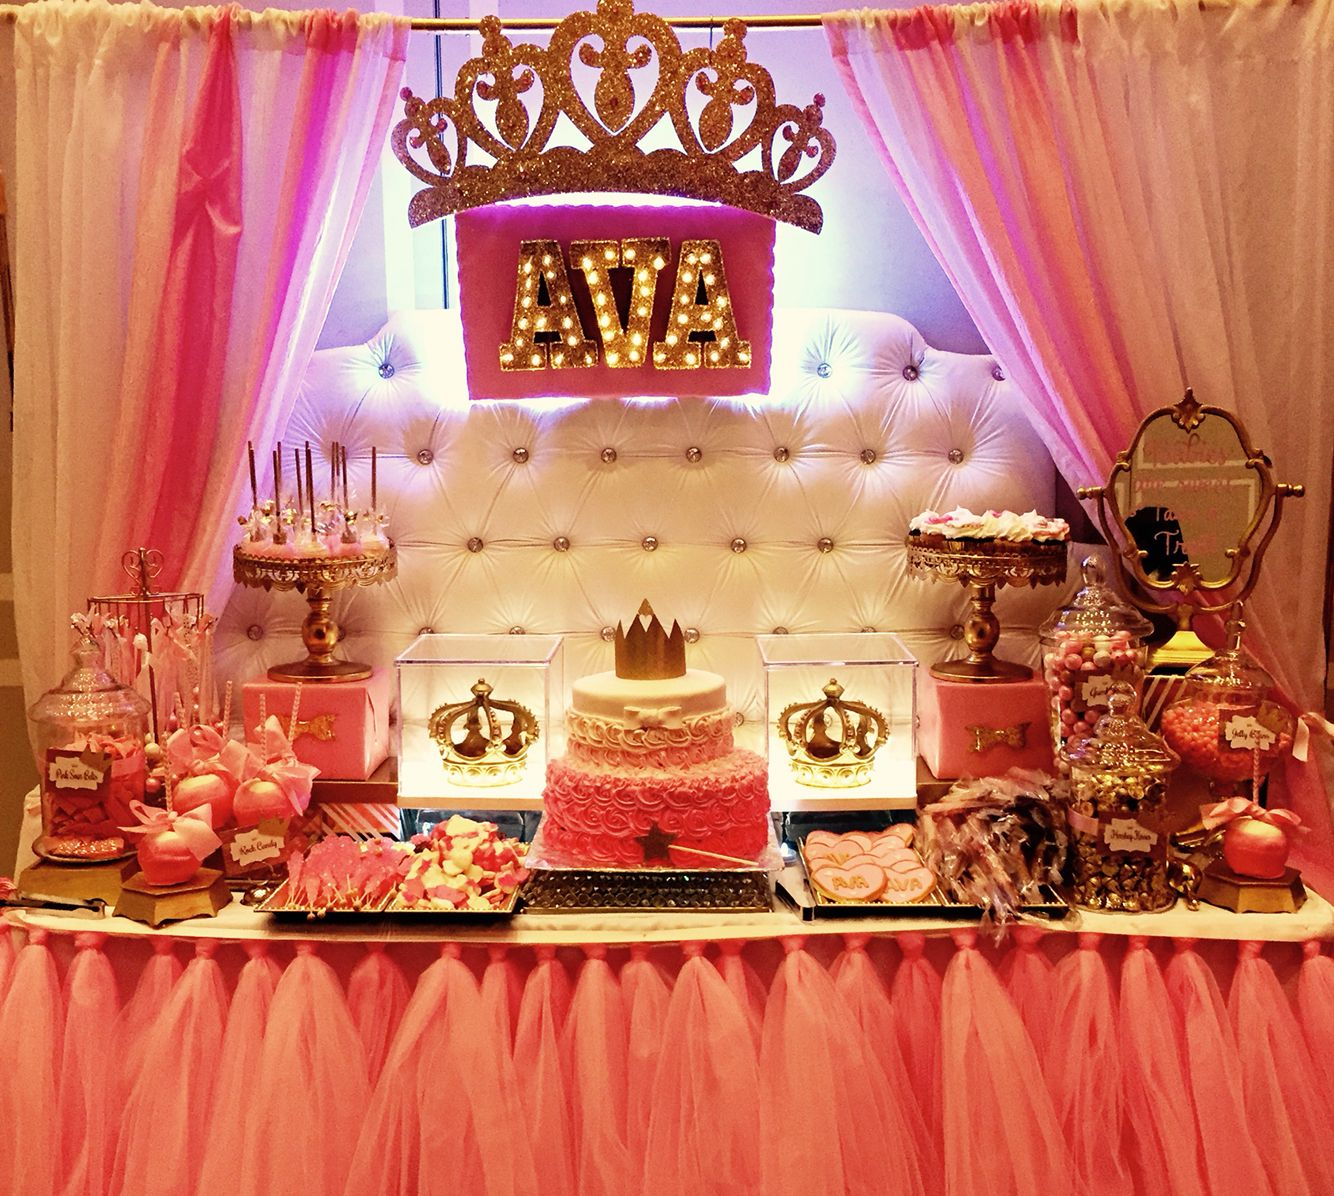 wedding shower candy buffet ideas%0A Princess theme baby shower candy dessert table styled by Glam Candy Buffets